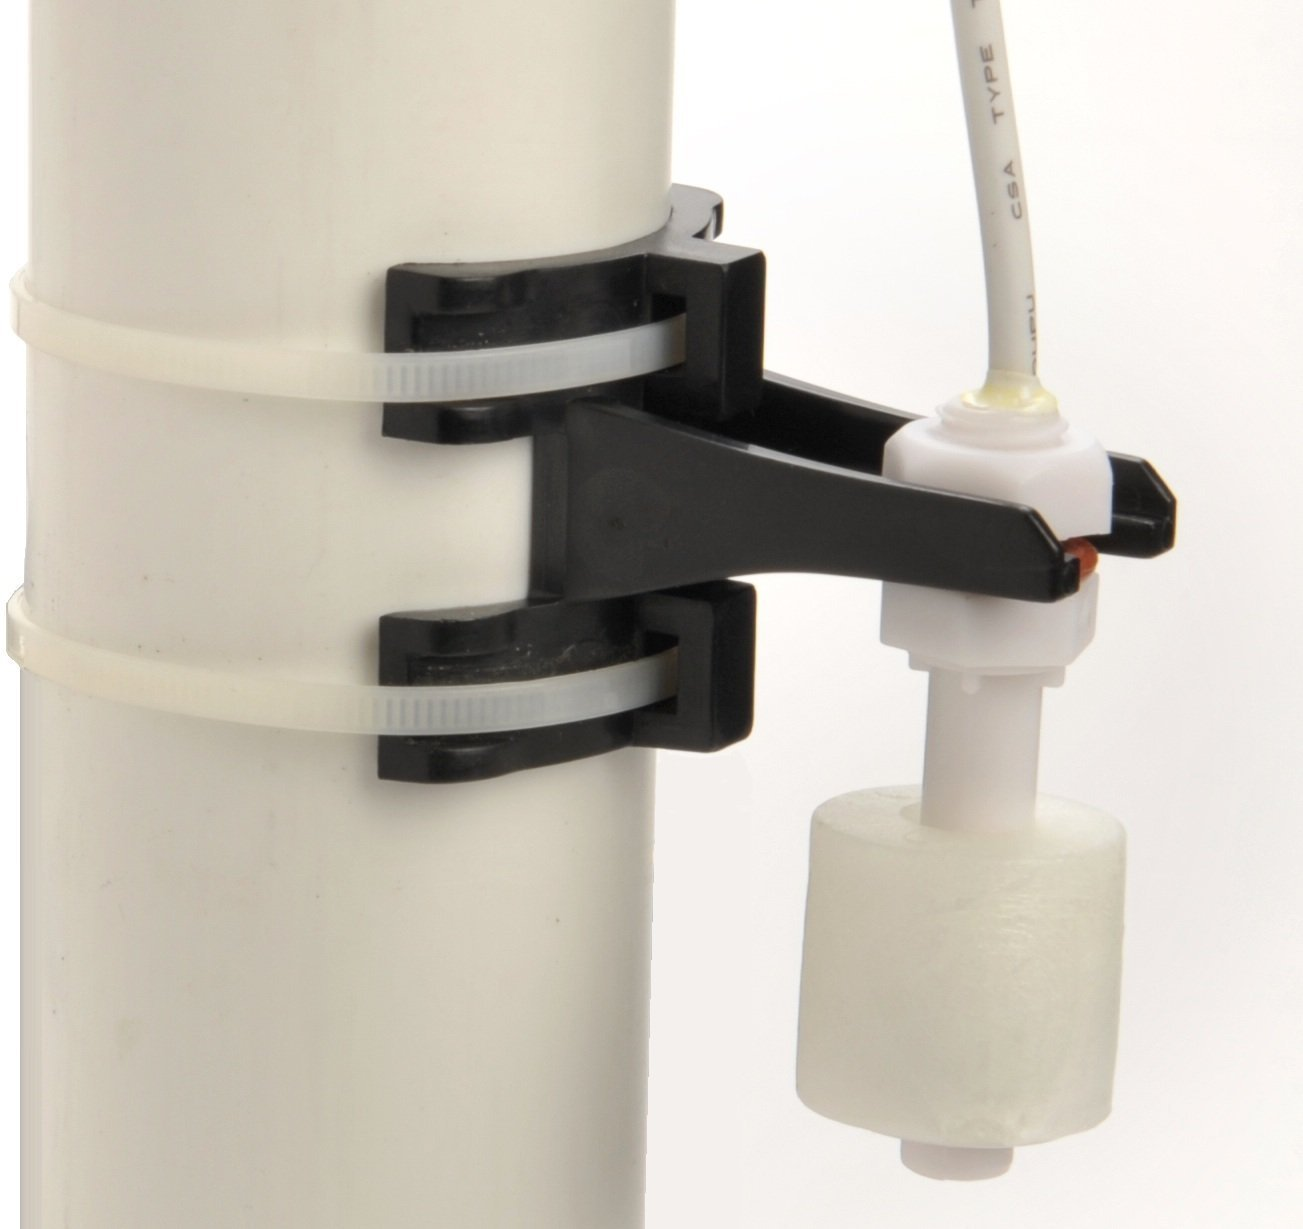 Level Sense 15 Feet Water Level Float Switch with Mounting Brackets